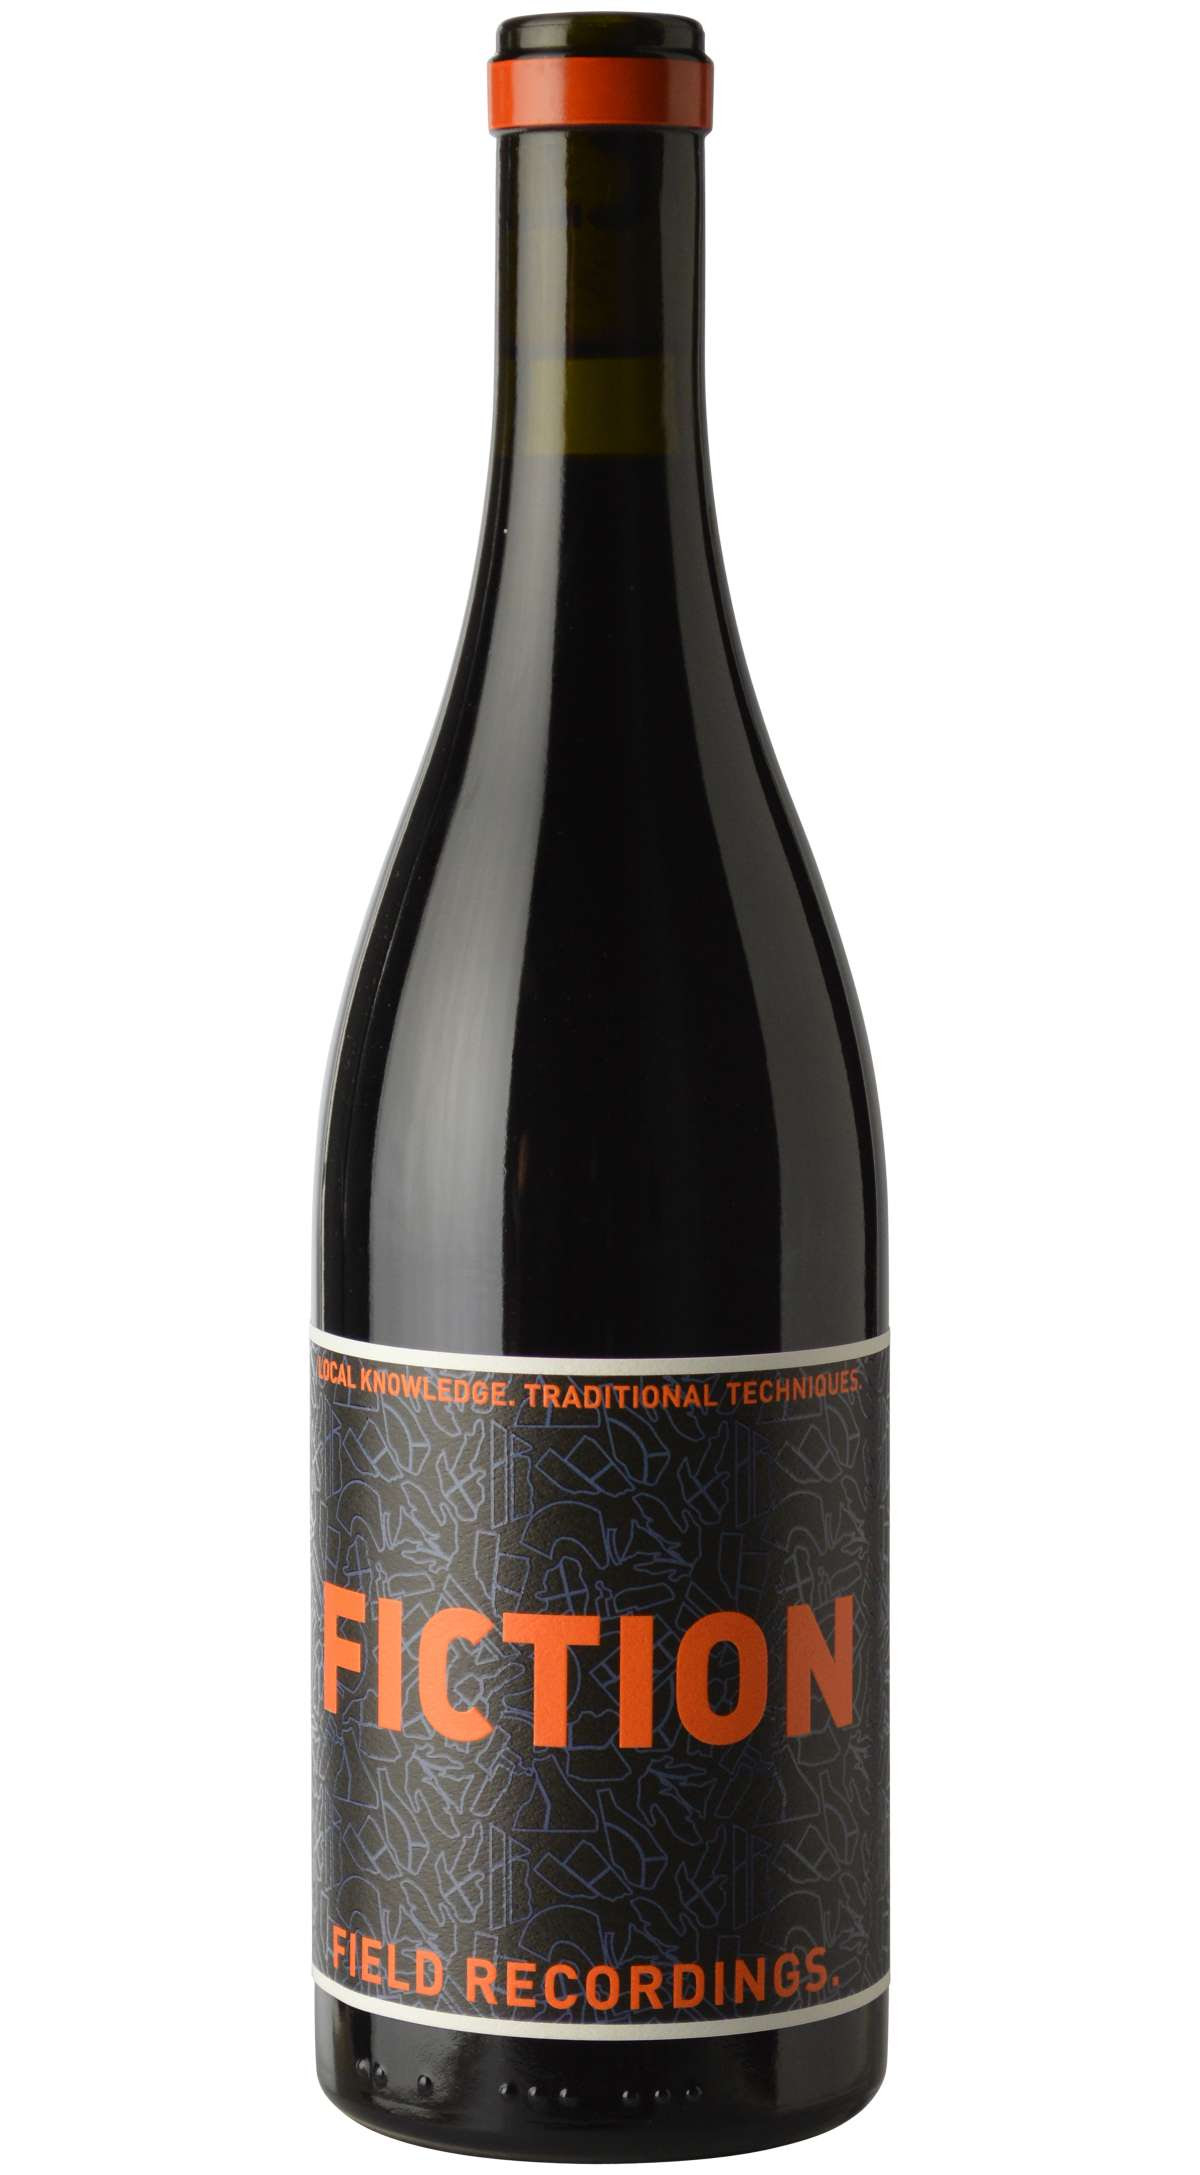 Fiction RED Blend from Field Recordings